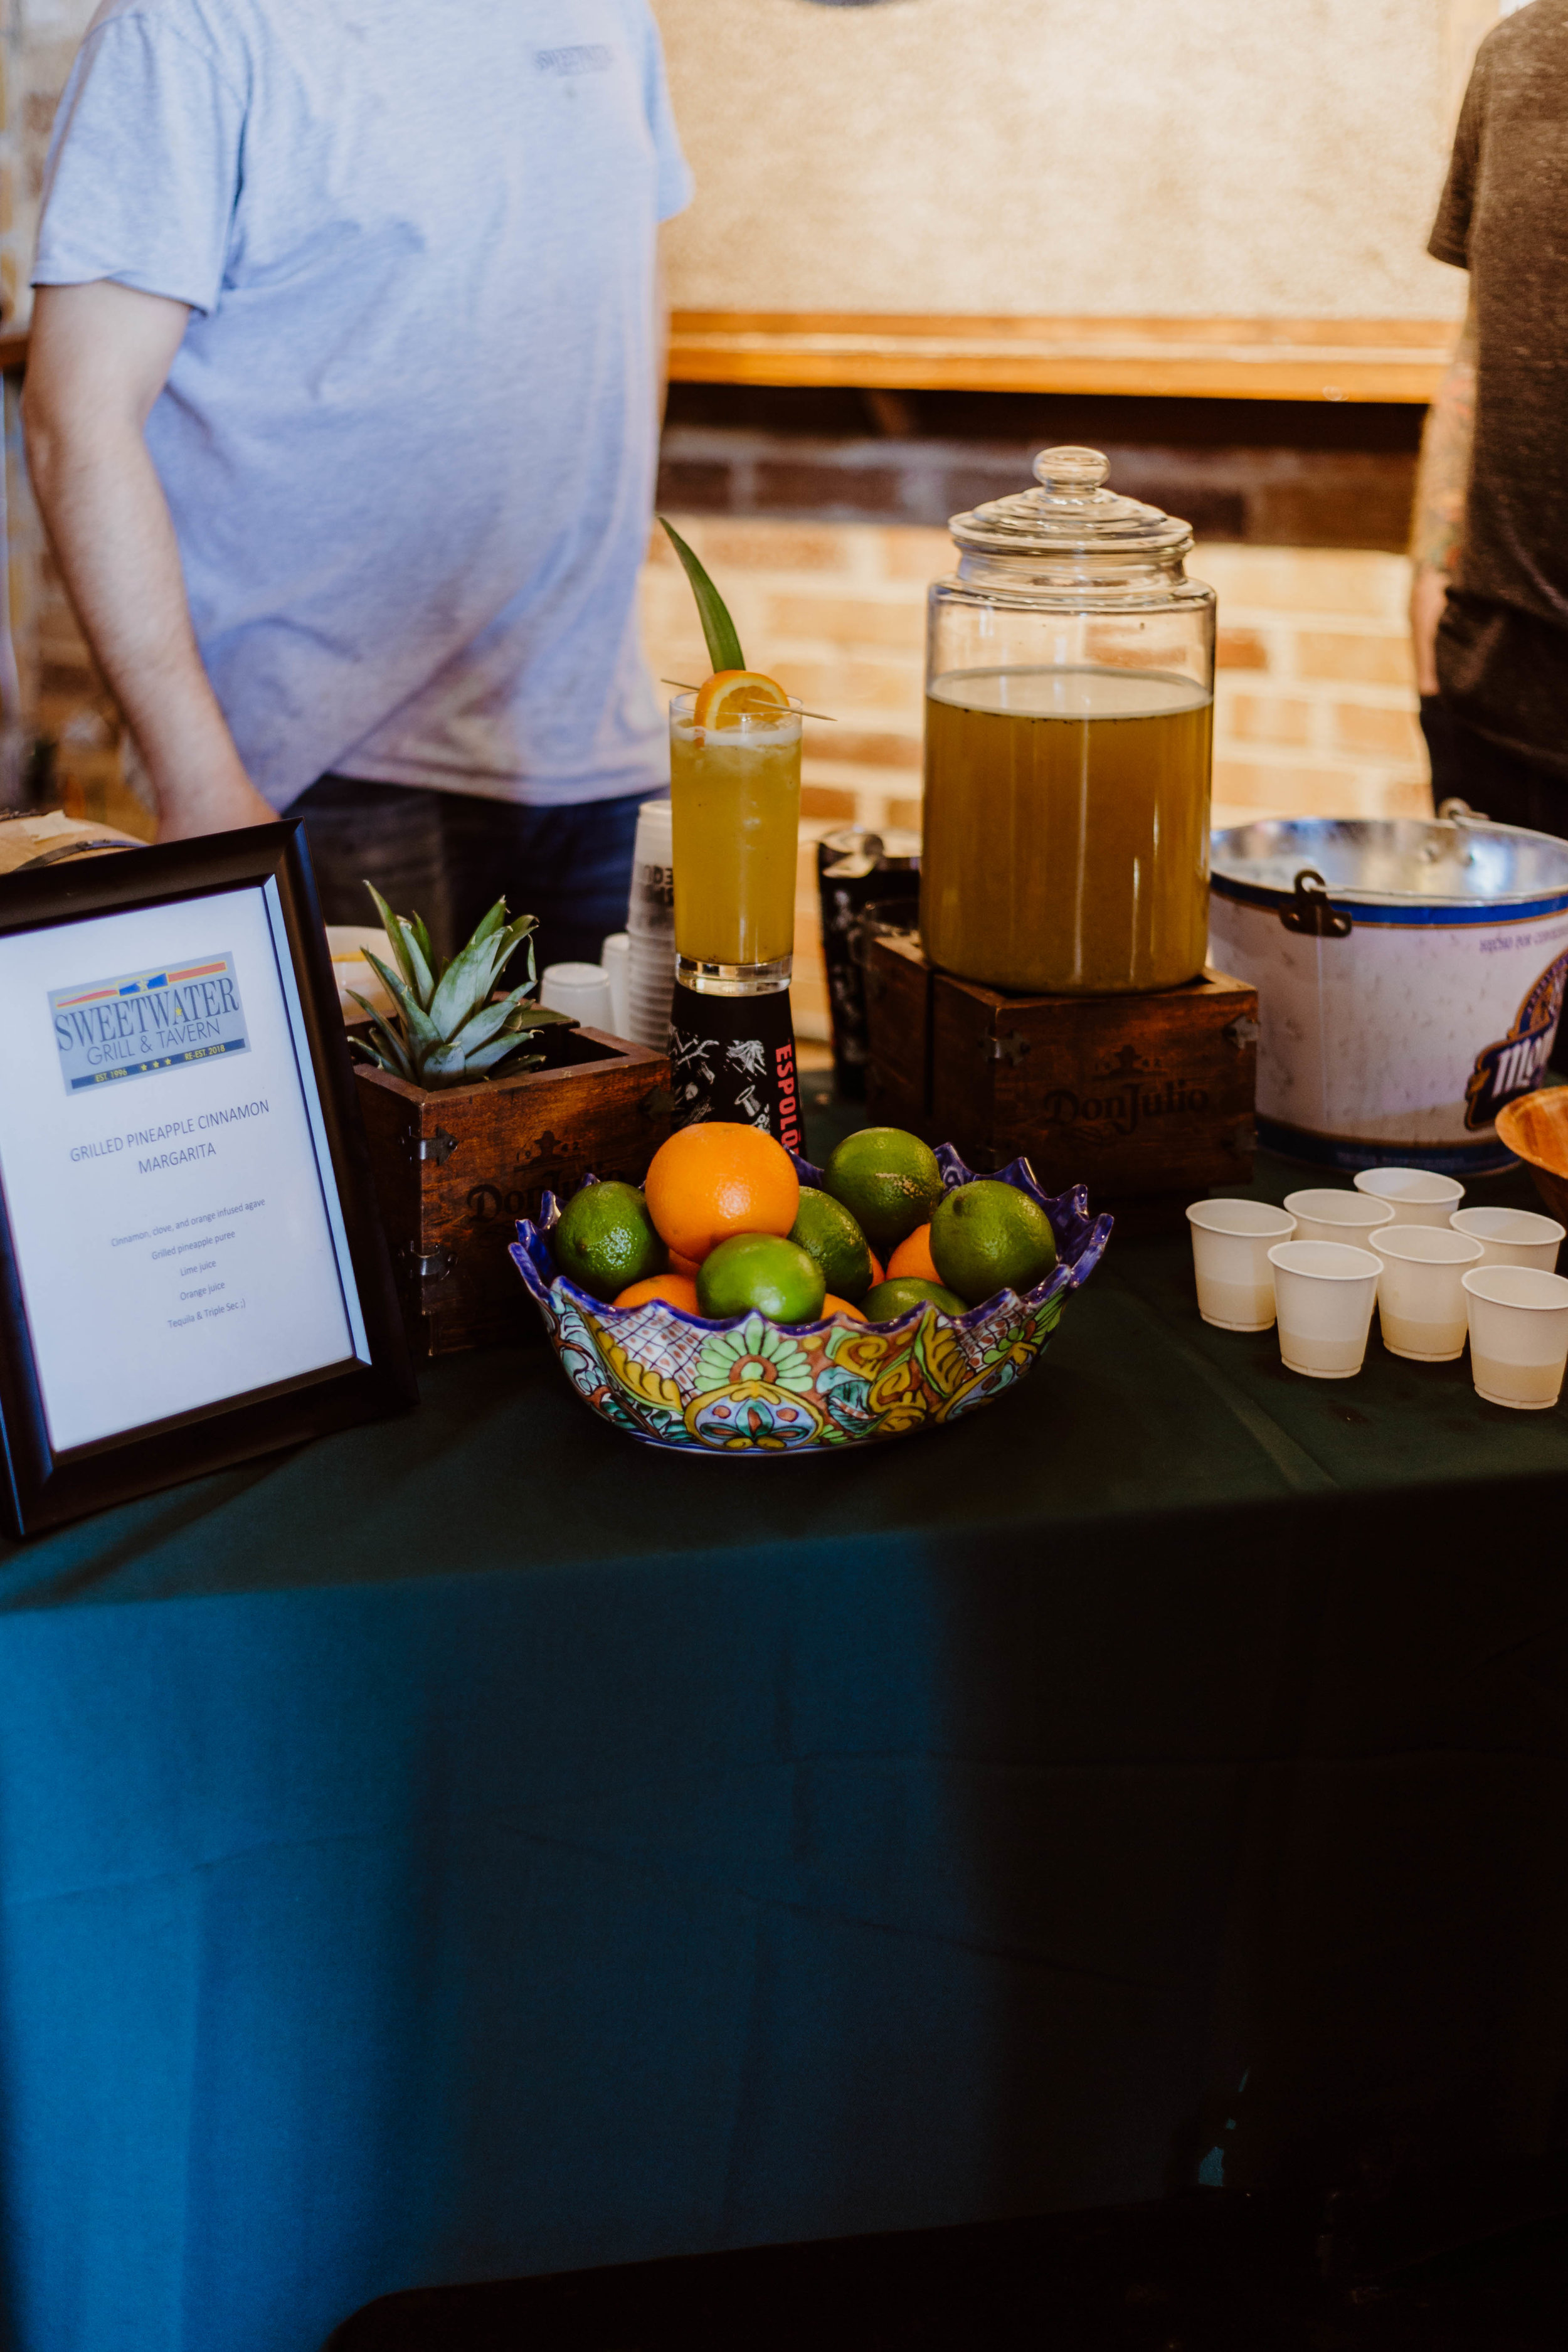 Sweetwater's display for their very own Grilled Pineapple Cinnamon Margarita.